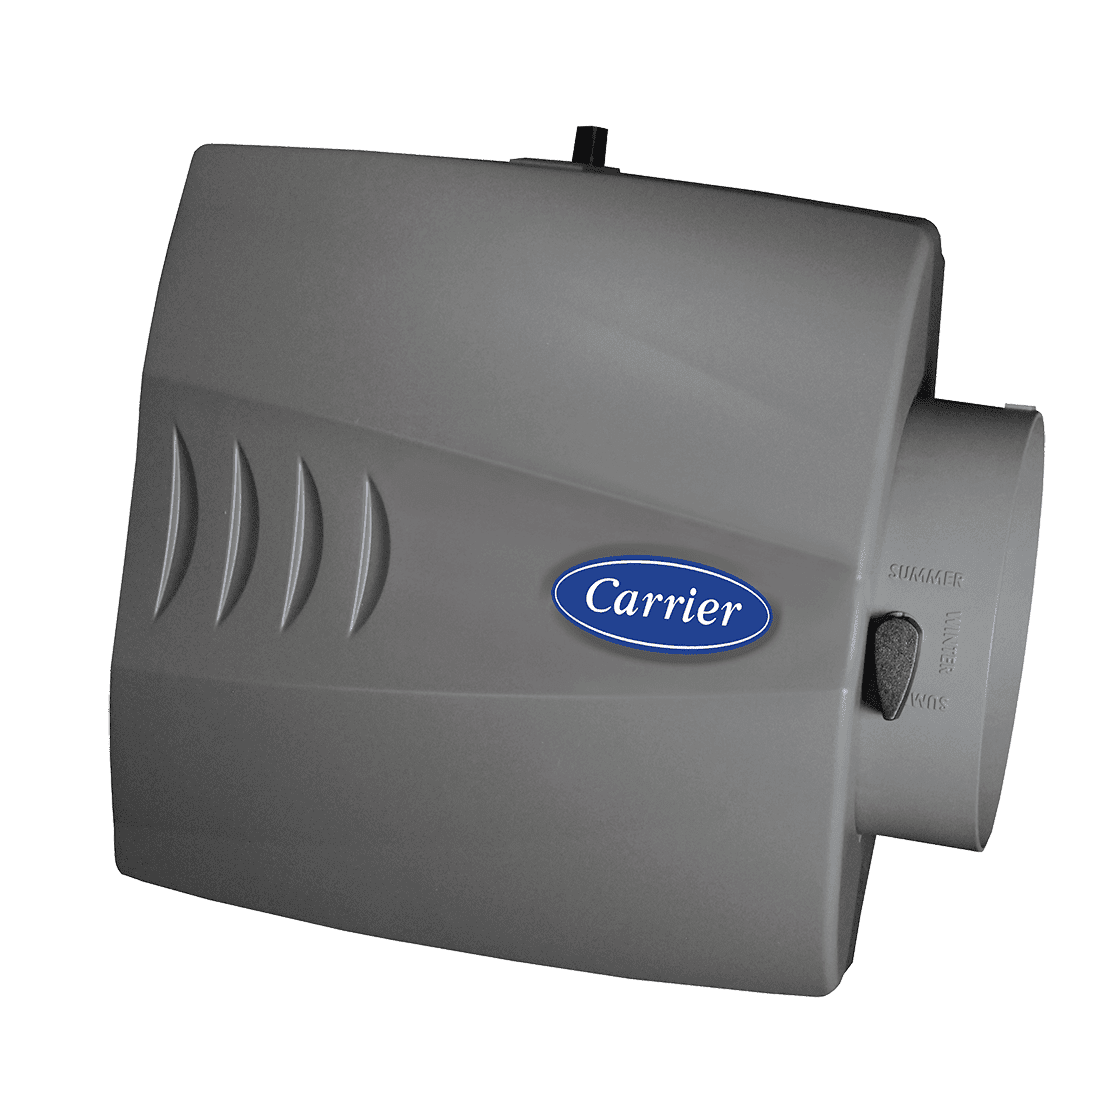 Performance™ Bypass Humidifier Model: HUMCCSBP